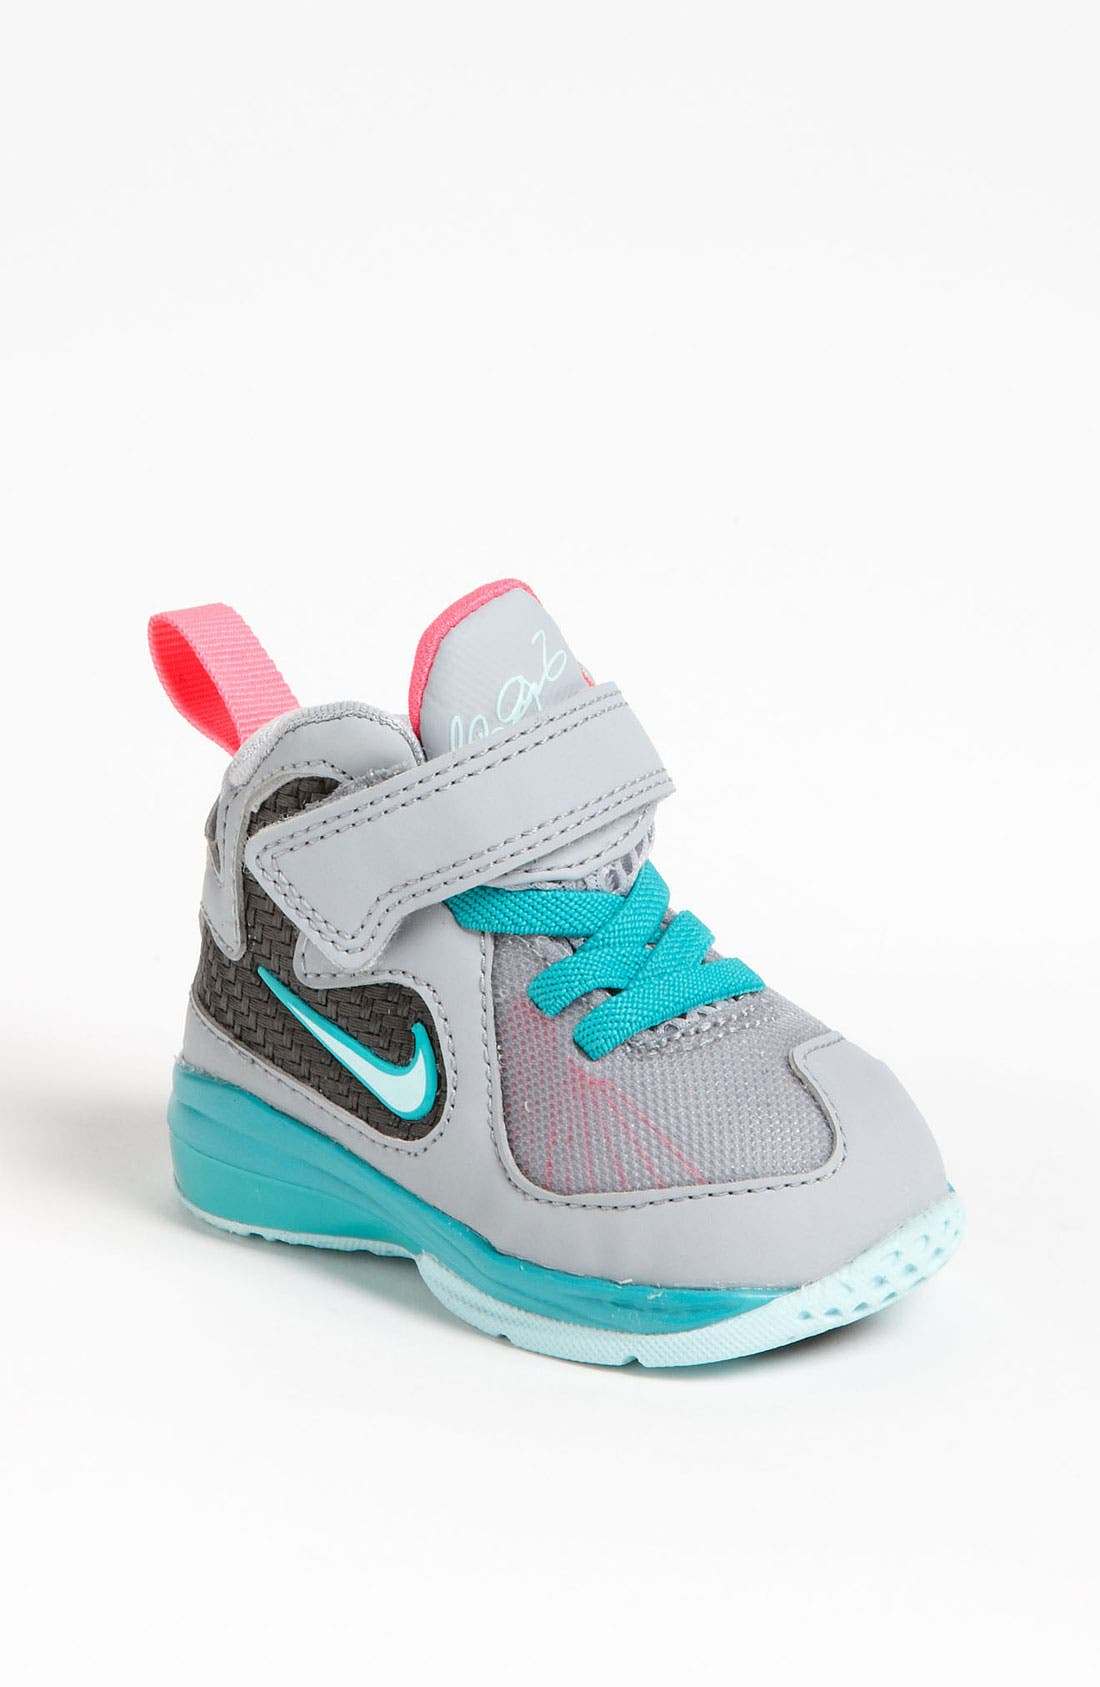 Nike Air Max LeBron VIIII Basketball Shoe Baby Walker